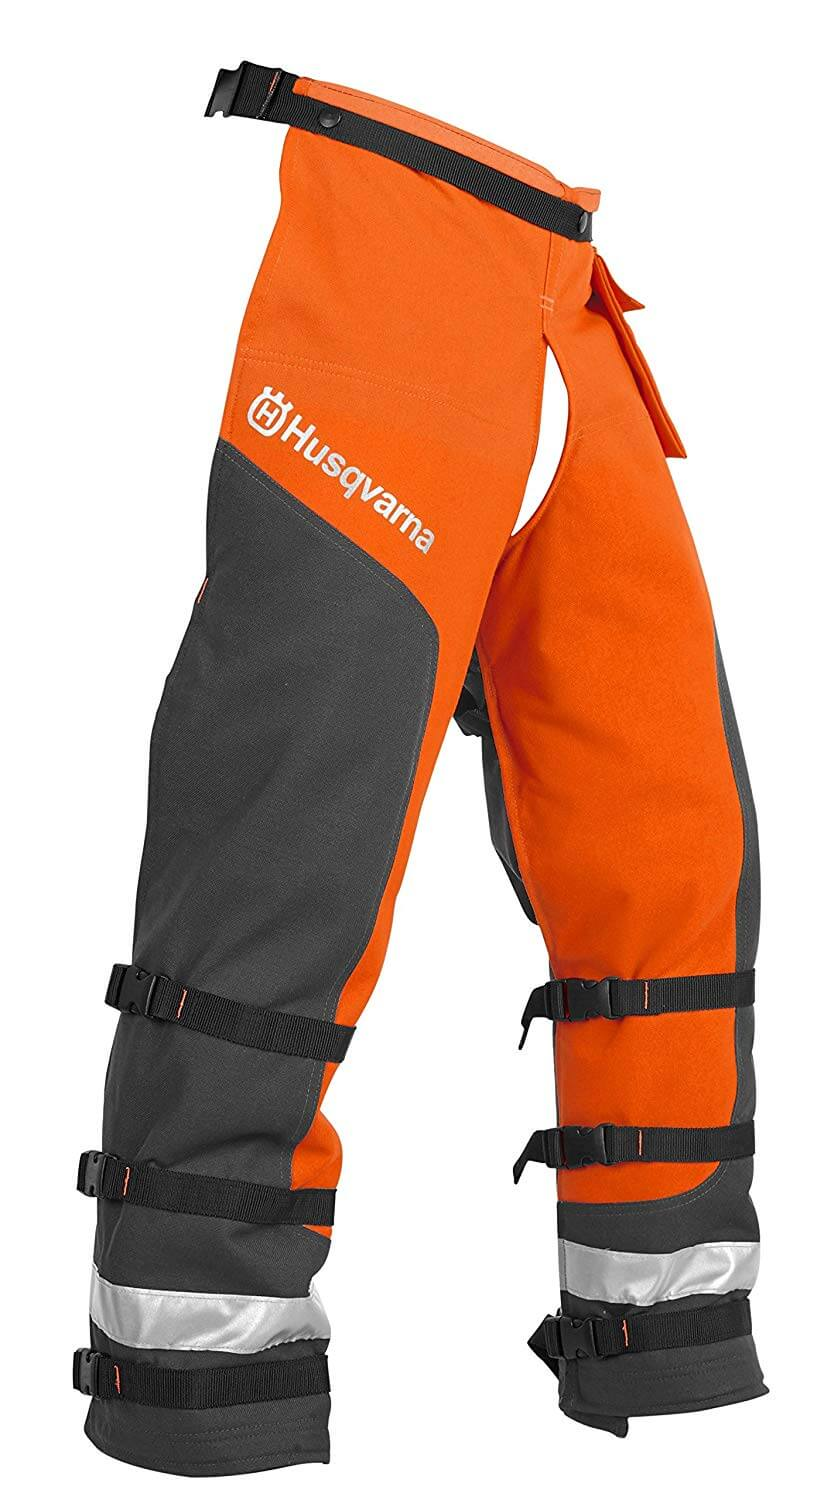 Husqvarna Technical Apron Wrap Chap